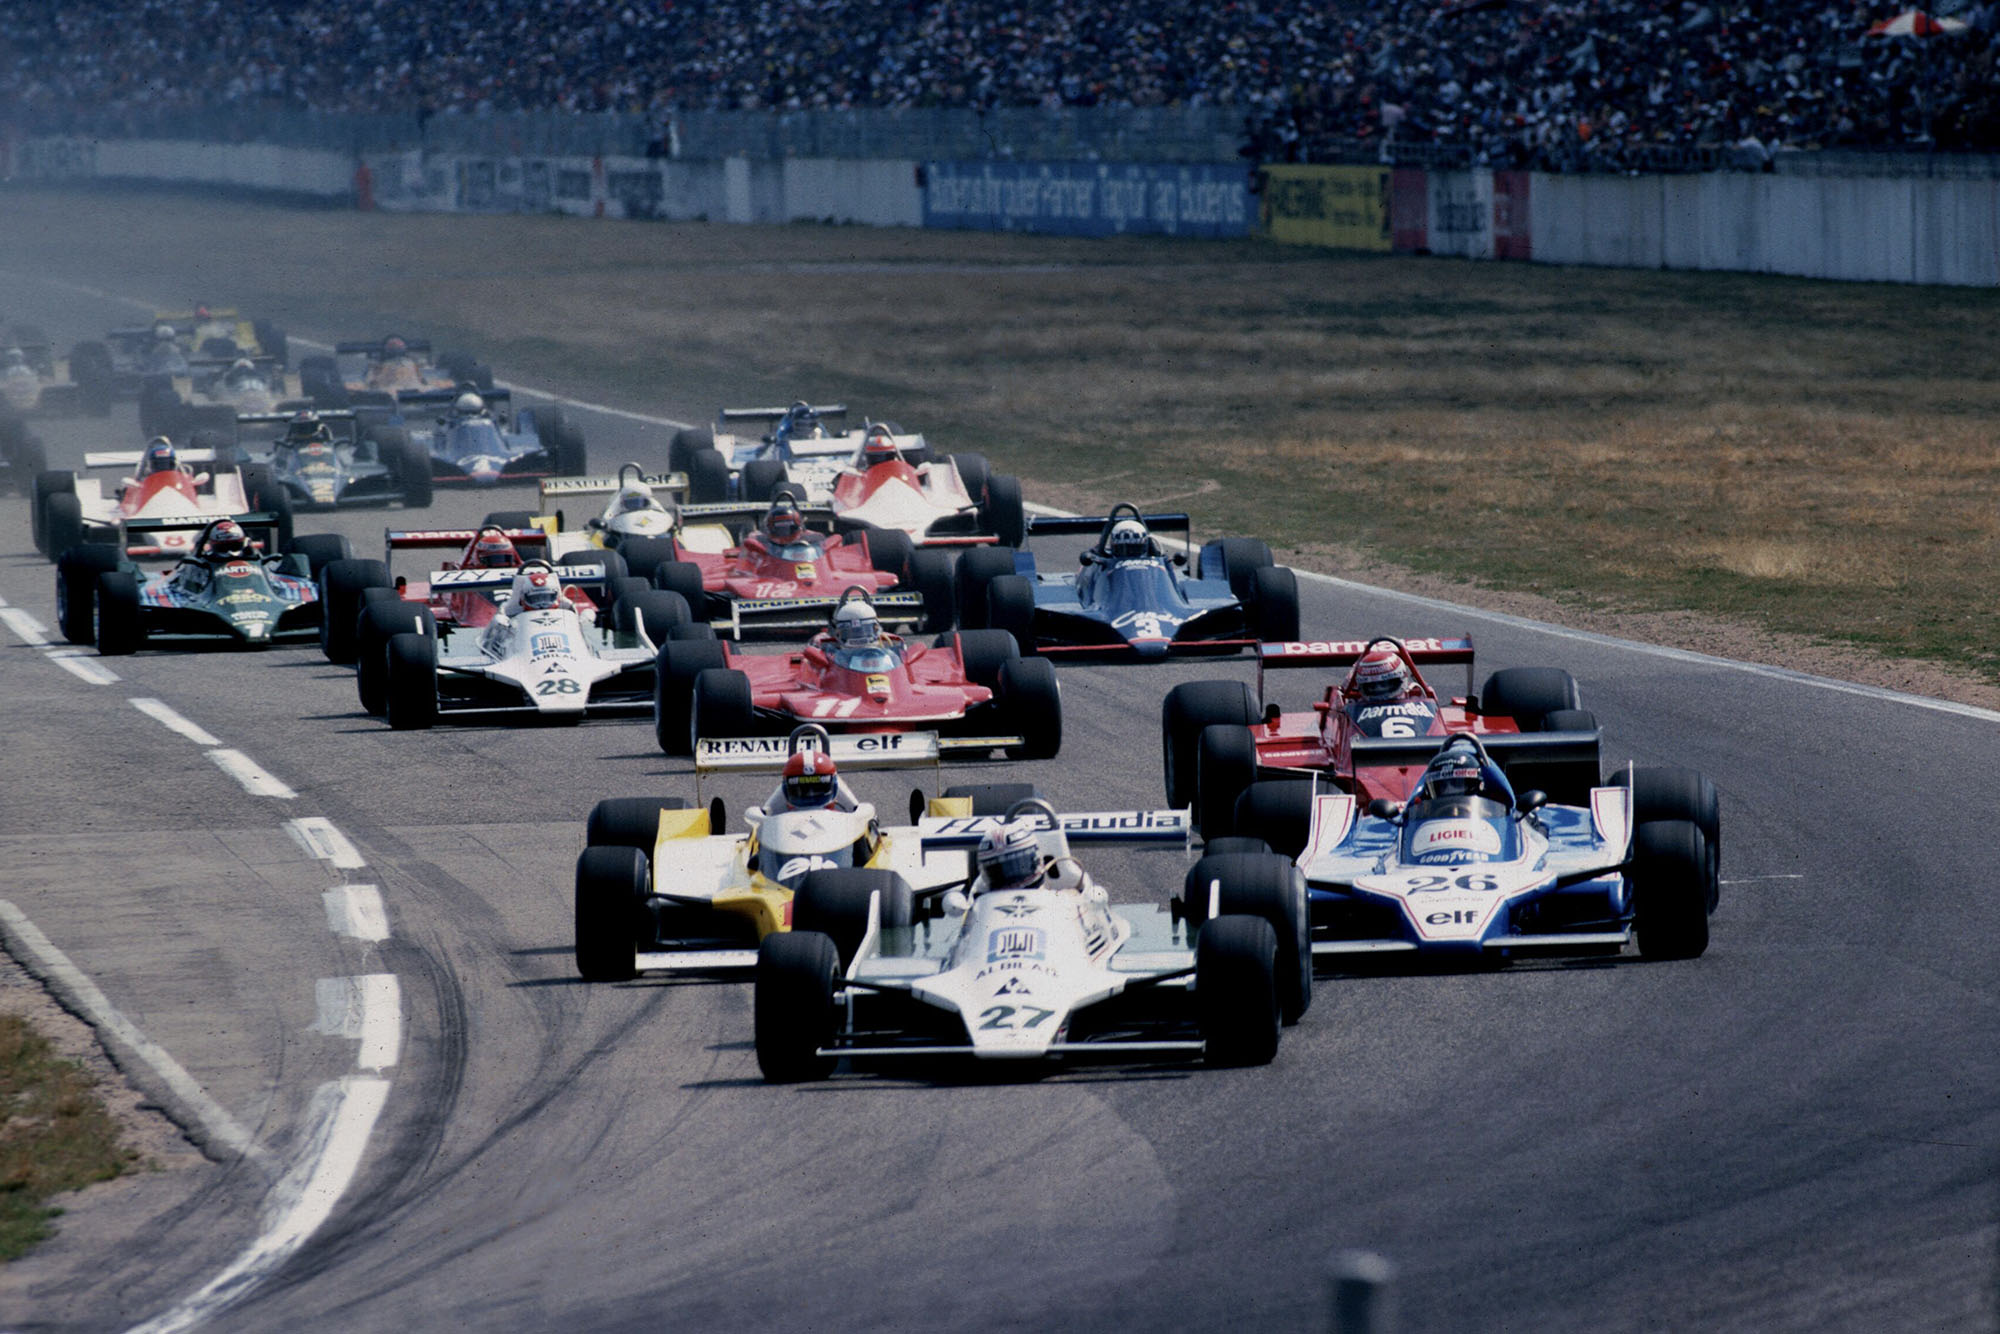 1979 German GP start